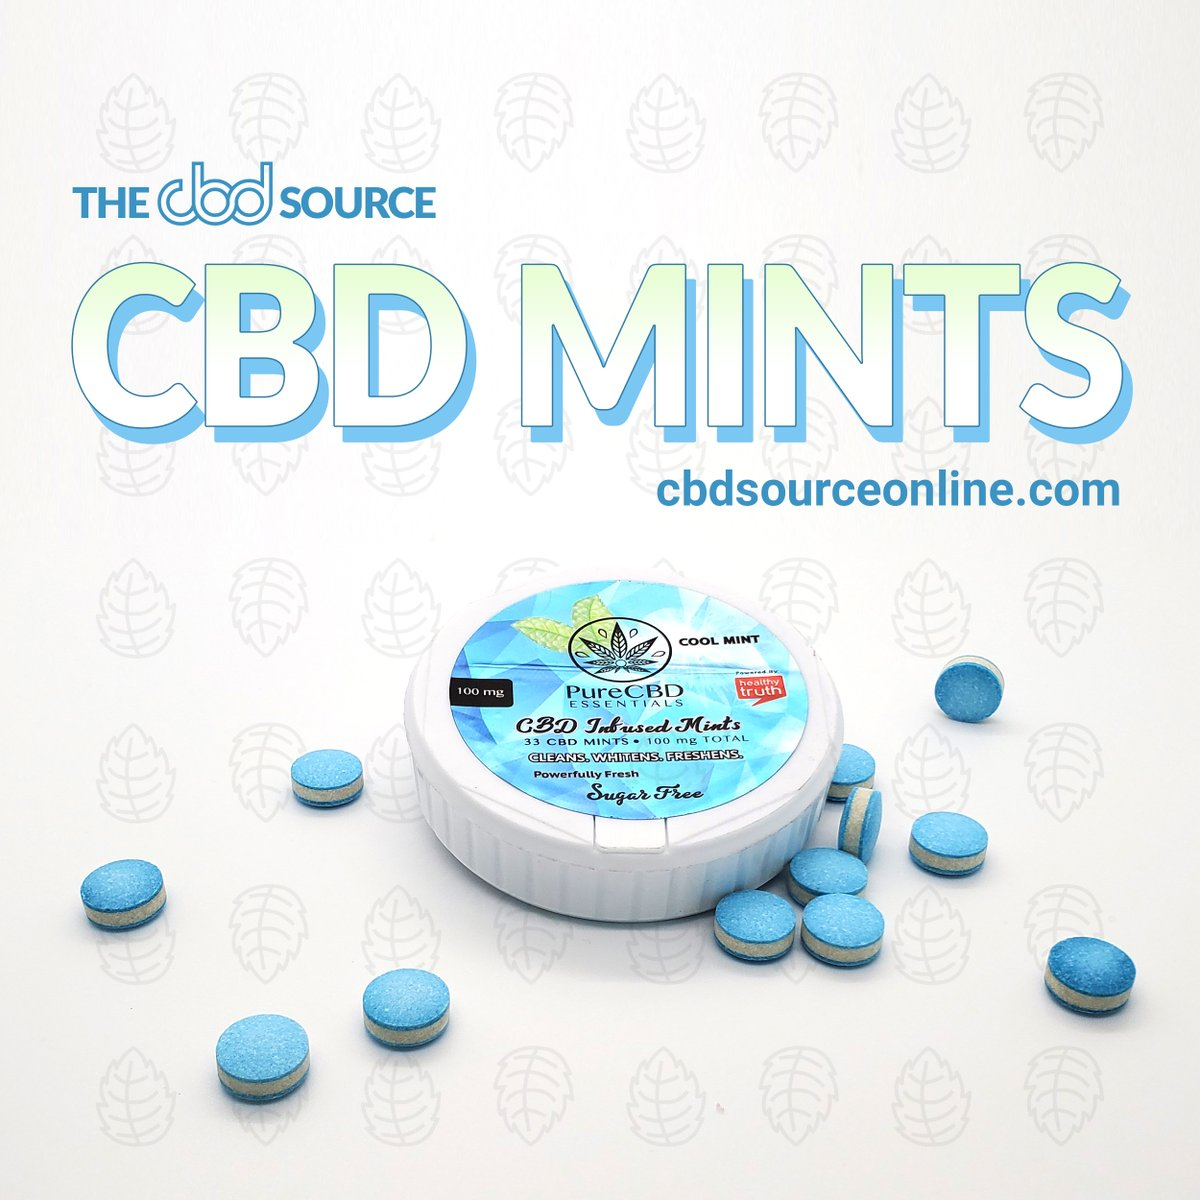 Our CBD Mints are an excellent alternative to swallowing pills or tinctures and dissolve in the mouth just like a standard breath mint. Shop now  https://t.co/bilQThbsPX  #cbd #love #cbdoil #new #instagood #cbdislife #mentalhealth #cbdlife #hempoil #cbdcure #healthyhemp #cbdcream https://t.co/TwrTIxw2EJ